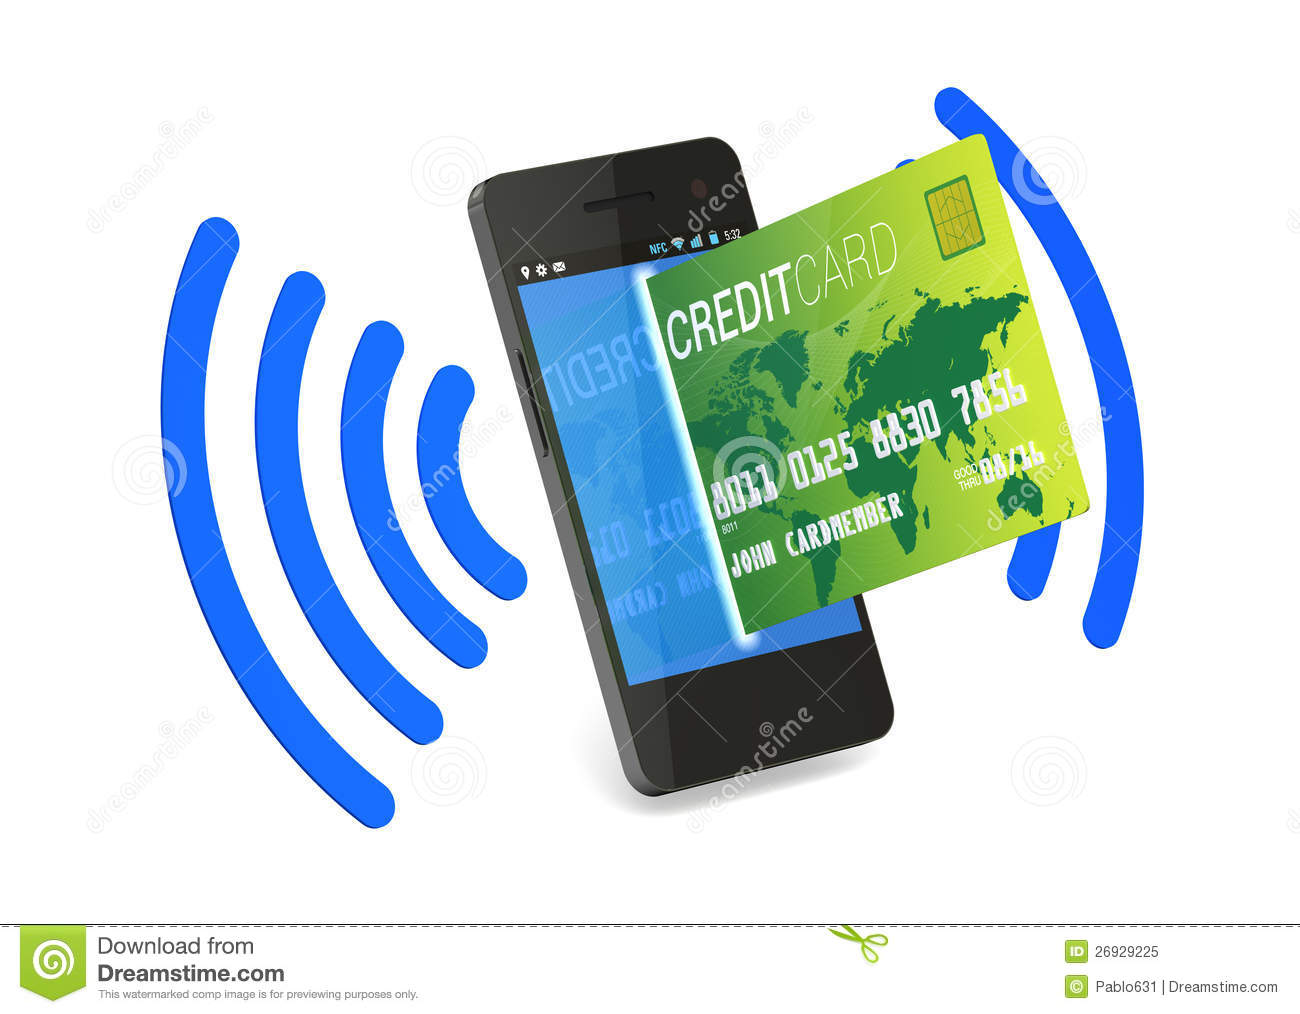 NFC Digital Credit Card